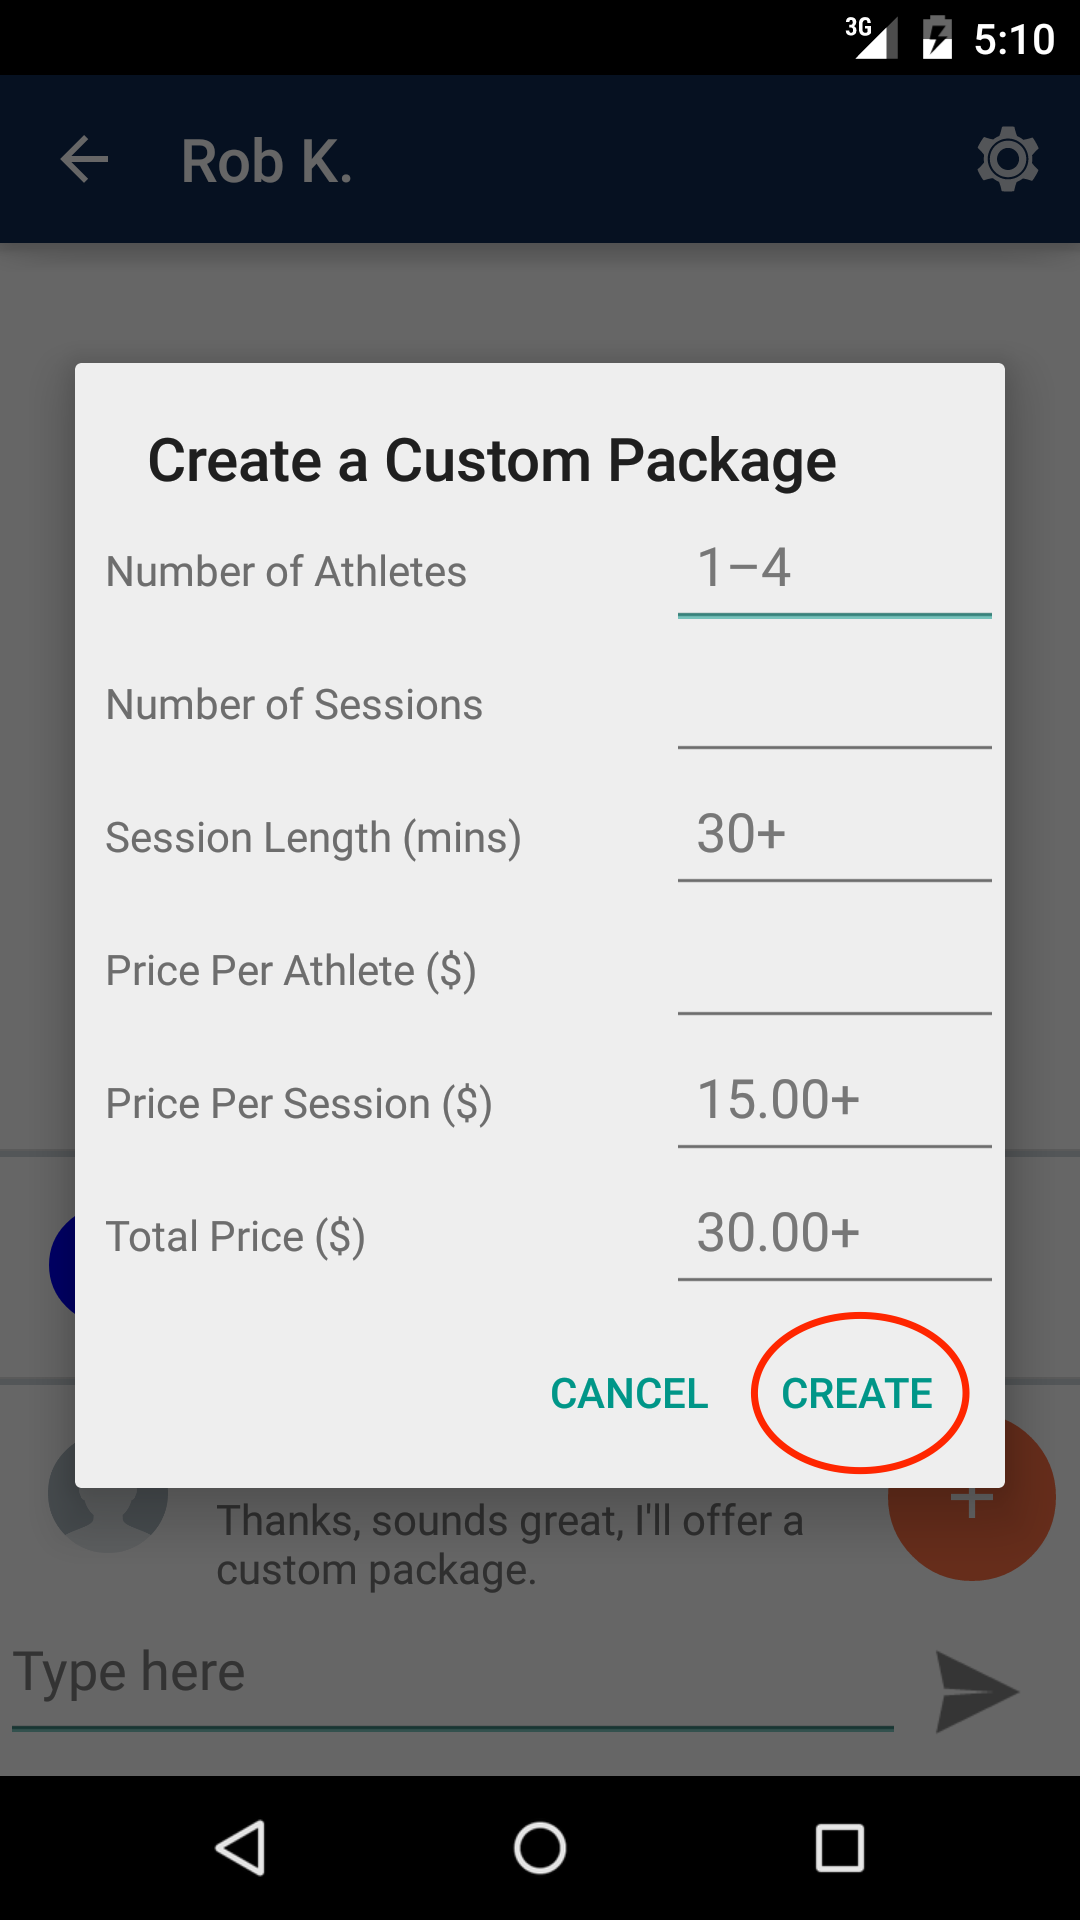 Offer Custom Package (Android)